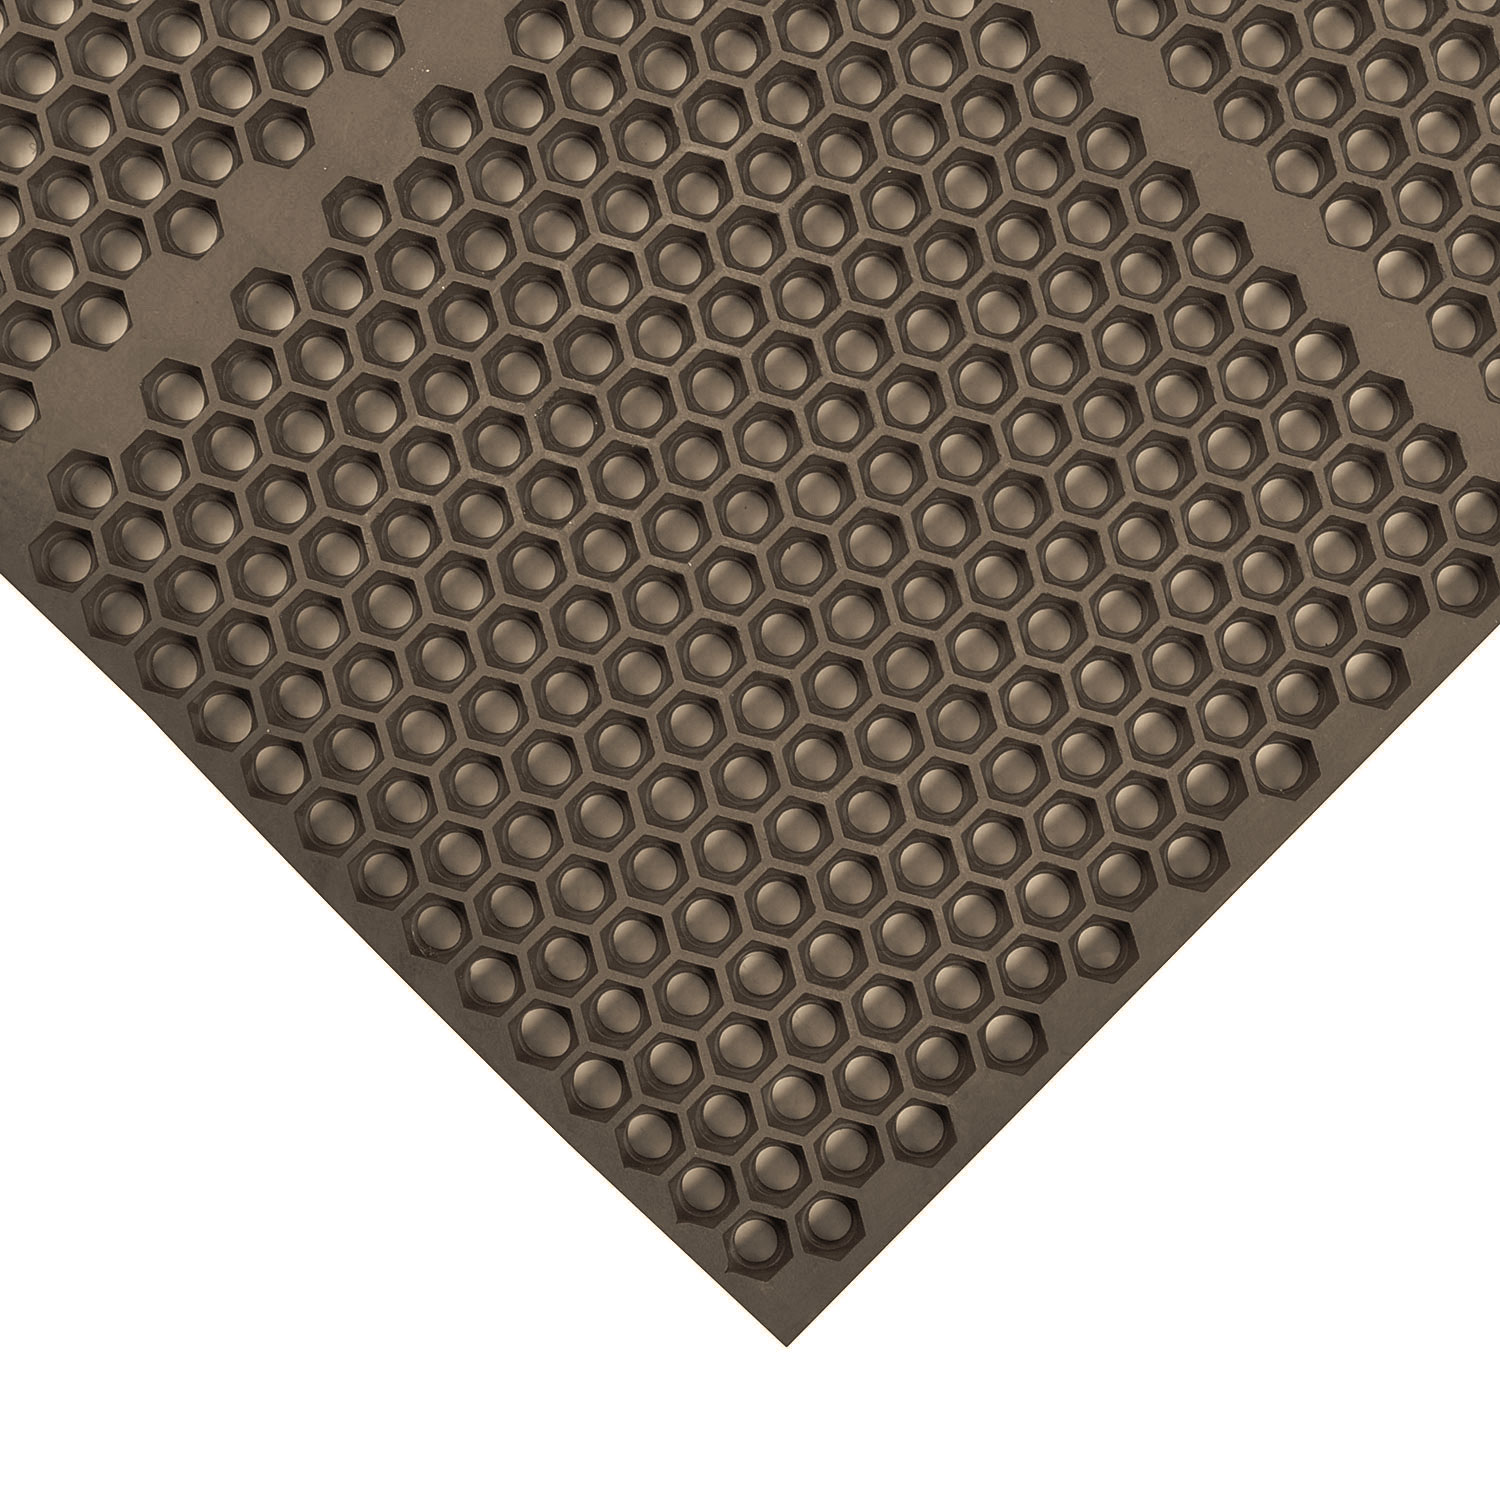 NoTrax 406179 Optimat Grease-Resistant Floor Mat, 36 x 48 in,